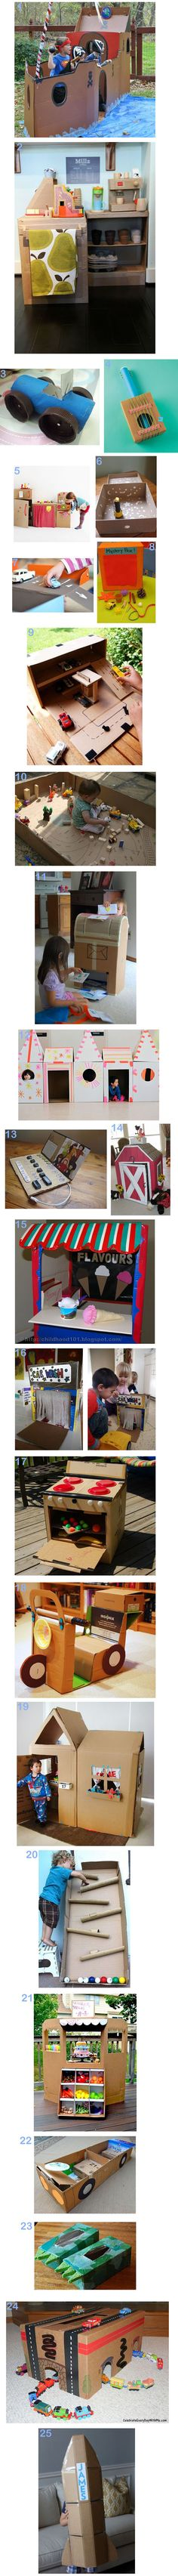 Cardboard Box Ideas - Dramatic Play area of my preschool classroom Craft Activities For Kids, Toddler Activities, Projects For Kids, Diy For Kids, Cool Kids, Crafts For Kids, Toddler Fun, Dramatic Play, Kids Playing